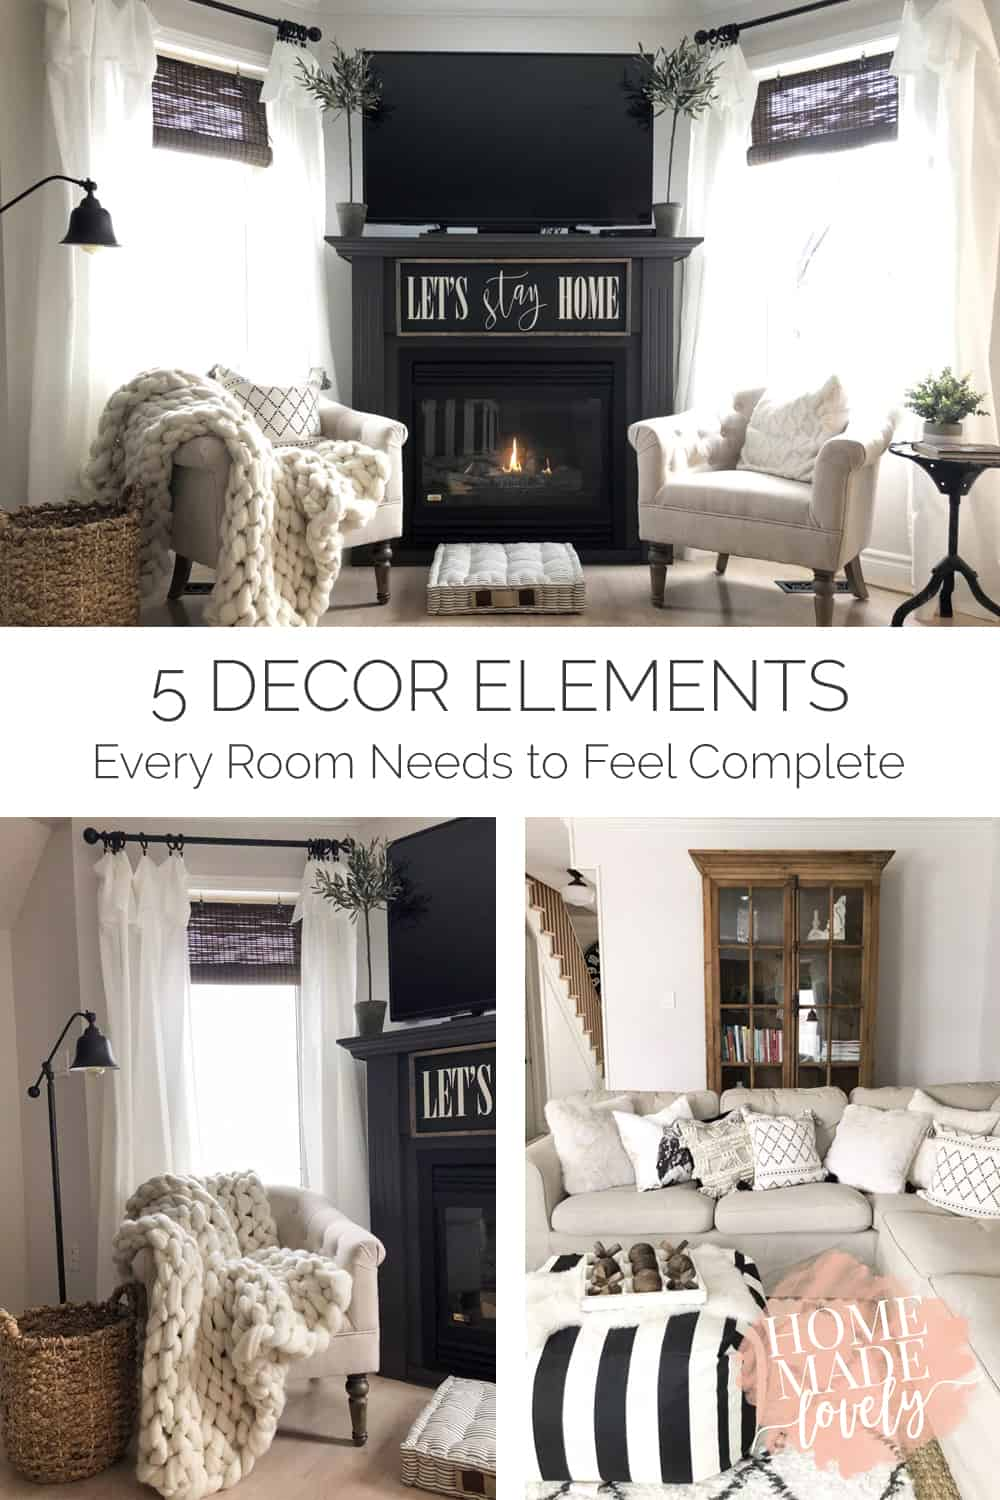 Some decor elements are just so basic that every room could use them. Here are 5 decor elements every room needs to be complete!